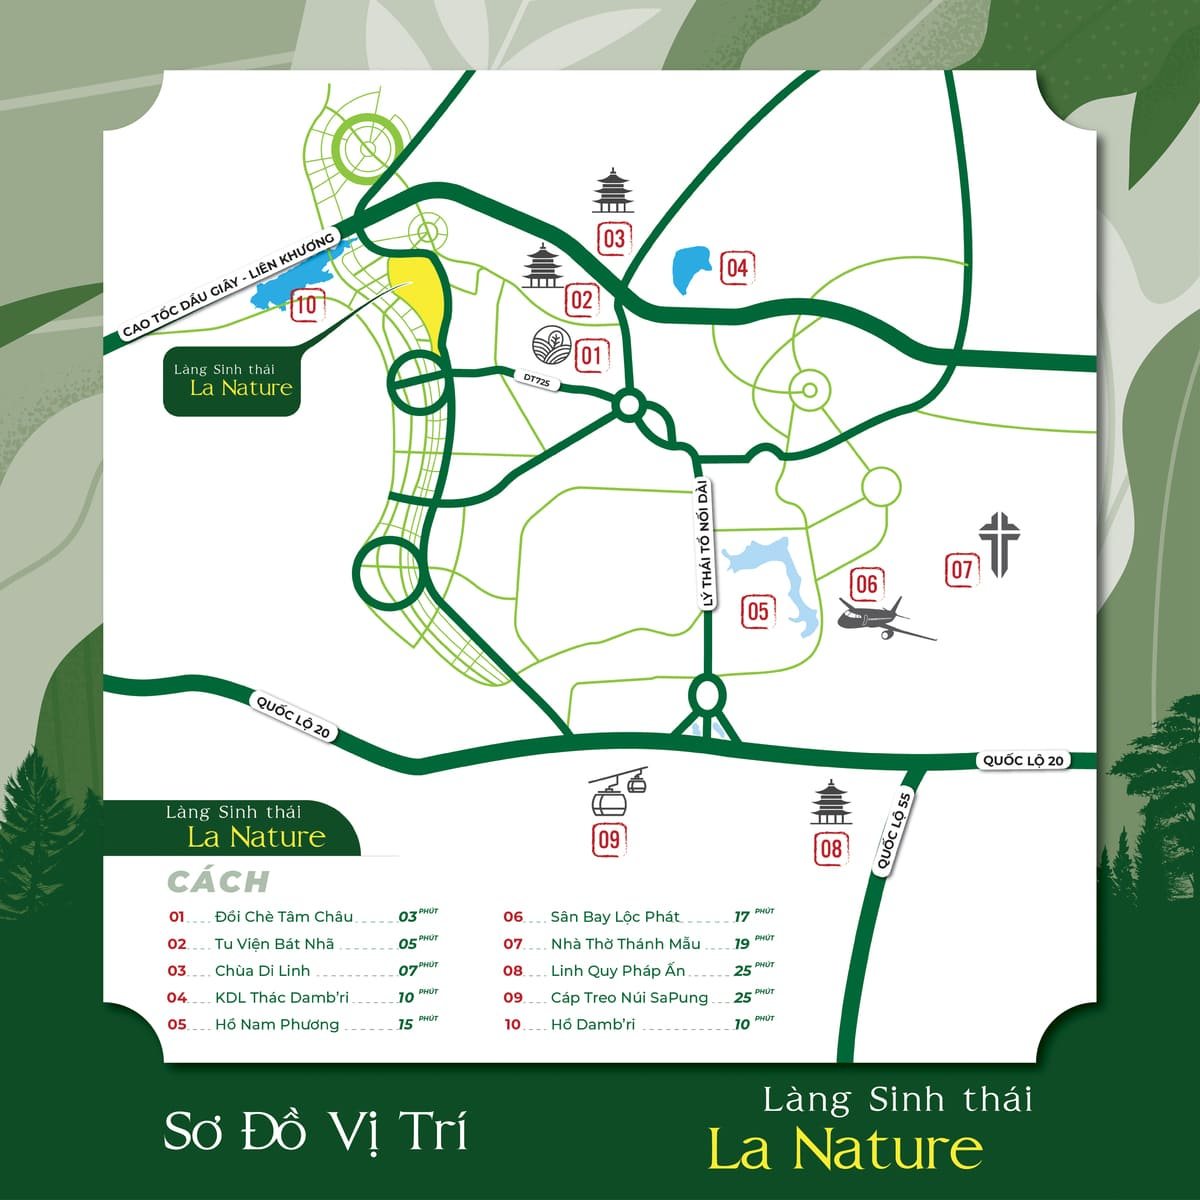 so do vi tri la nature bao loc - LA NATURE BẢO LỘC